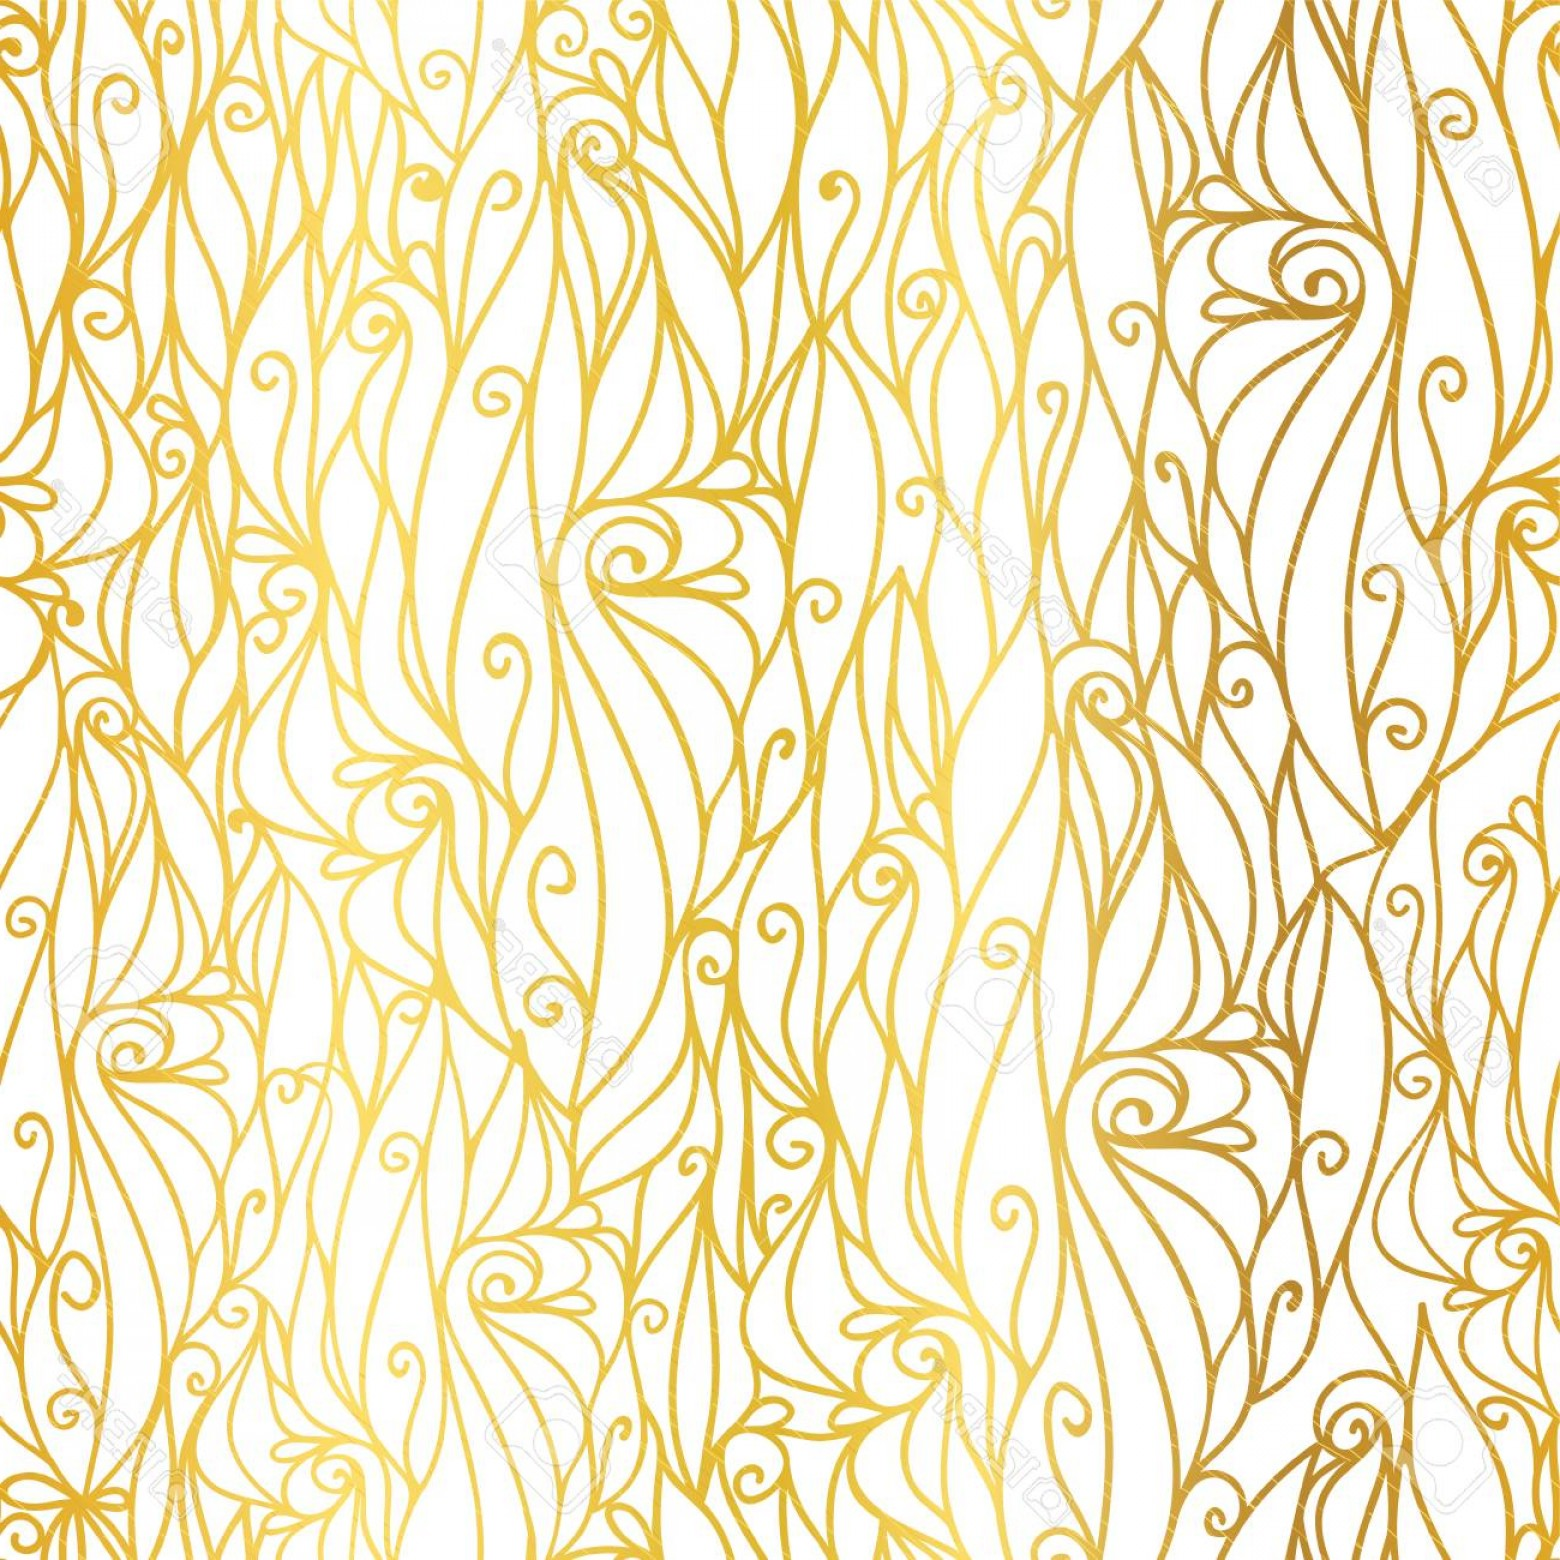 Gold Wedding Swirl Vector: Photostock Vector Vector Golden White Abstract Scrolls Swirls Seamless Pattern Background Great For Elegant Gold Textu